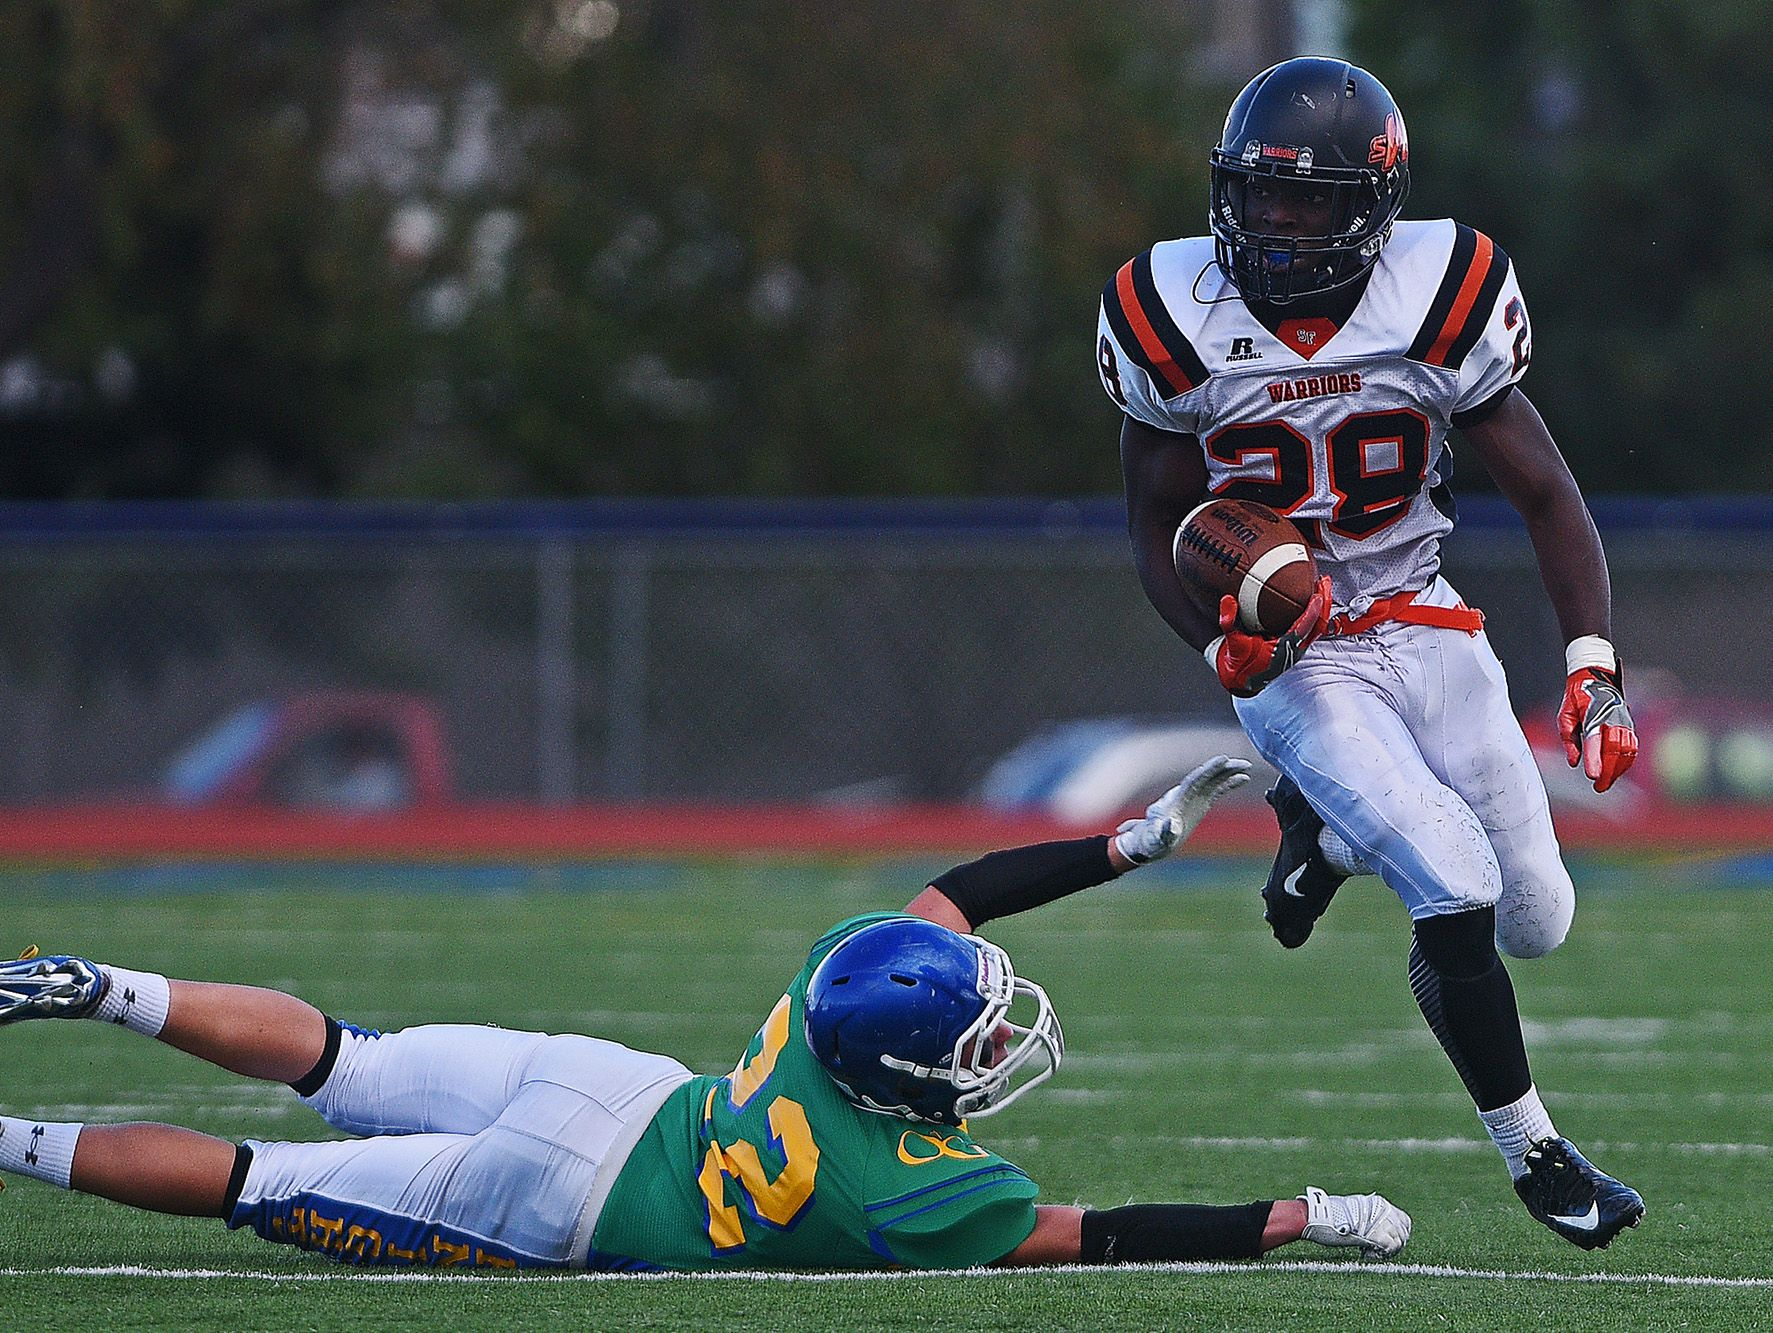 Washington's Tupac Kpeayeh (28) carries the ball past O'Gorman's Dylan Kallhoff (22) during a game Friday, Sept. 16, 2016, at McEneaney Field on the O'Gorman High School campus in Sioux Falls.